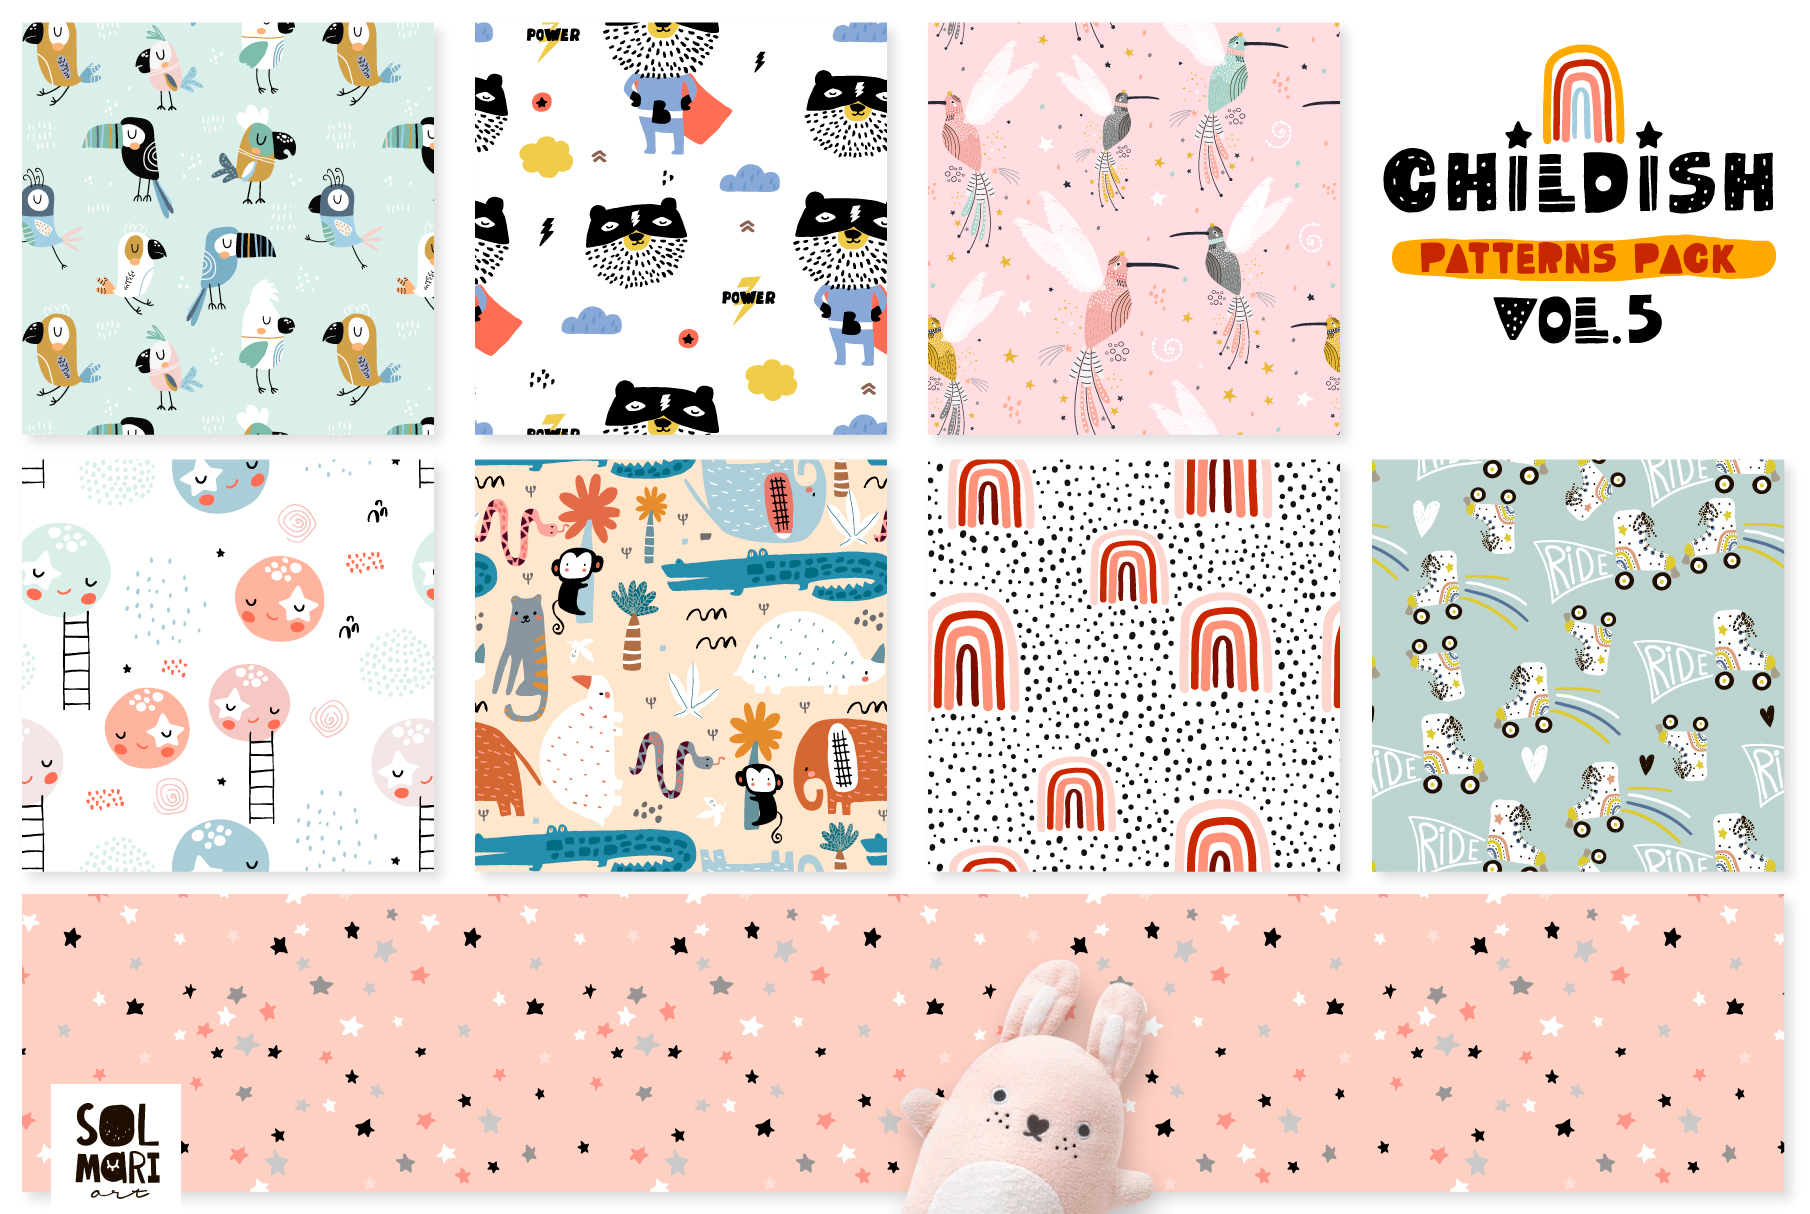 Childish patterns pack vol. 5 example image 2